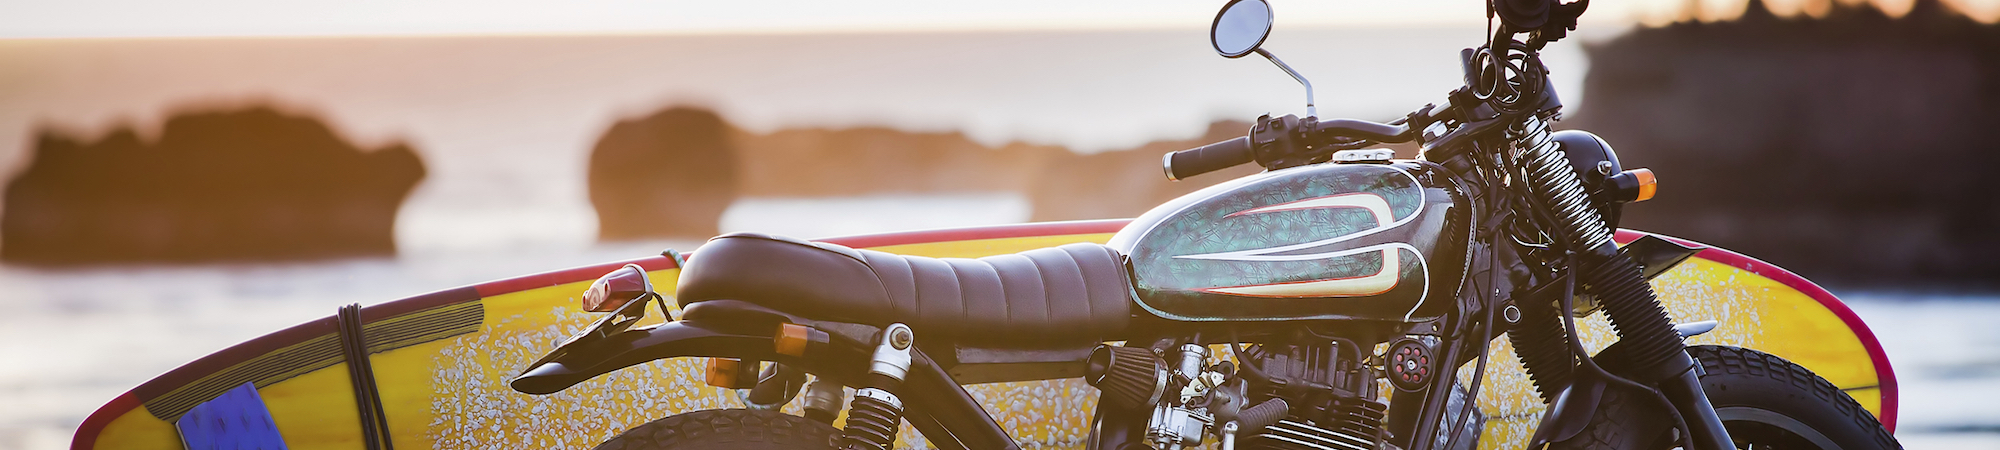 MWT motorcycle and surfboard